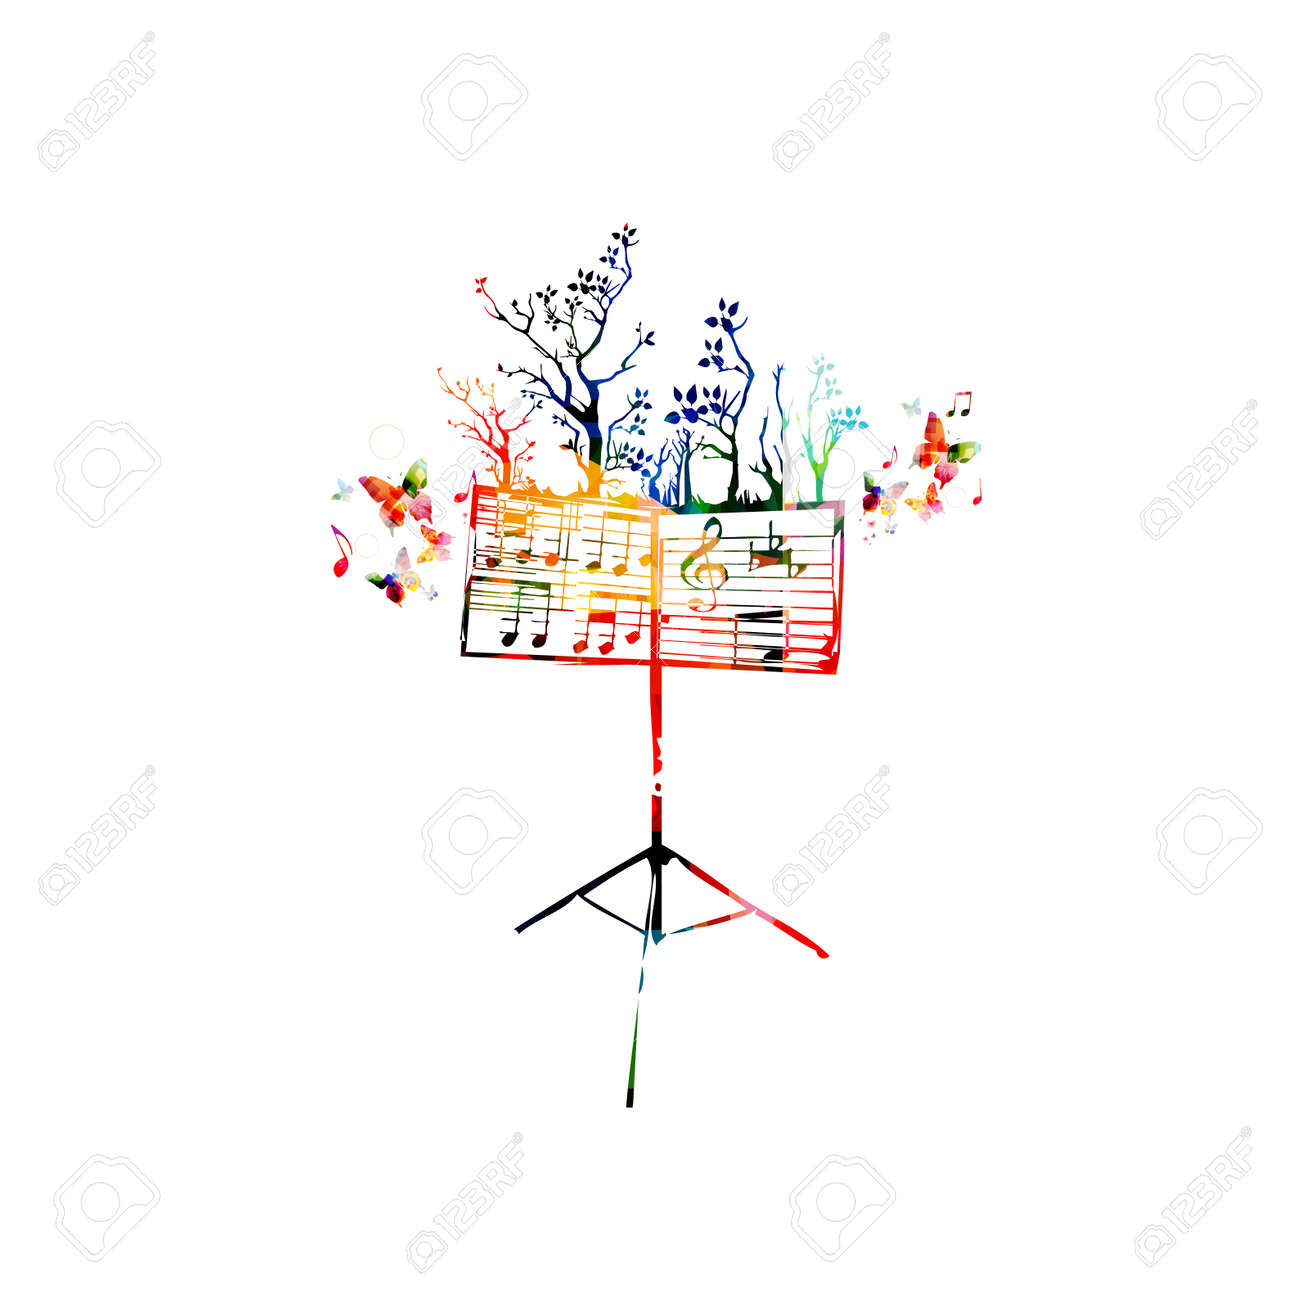 Colorful music background with music stand and butterflies - 61586112